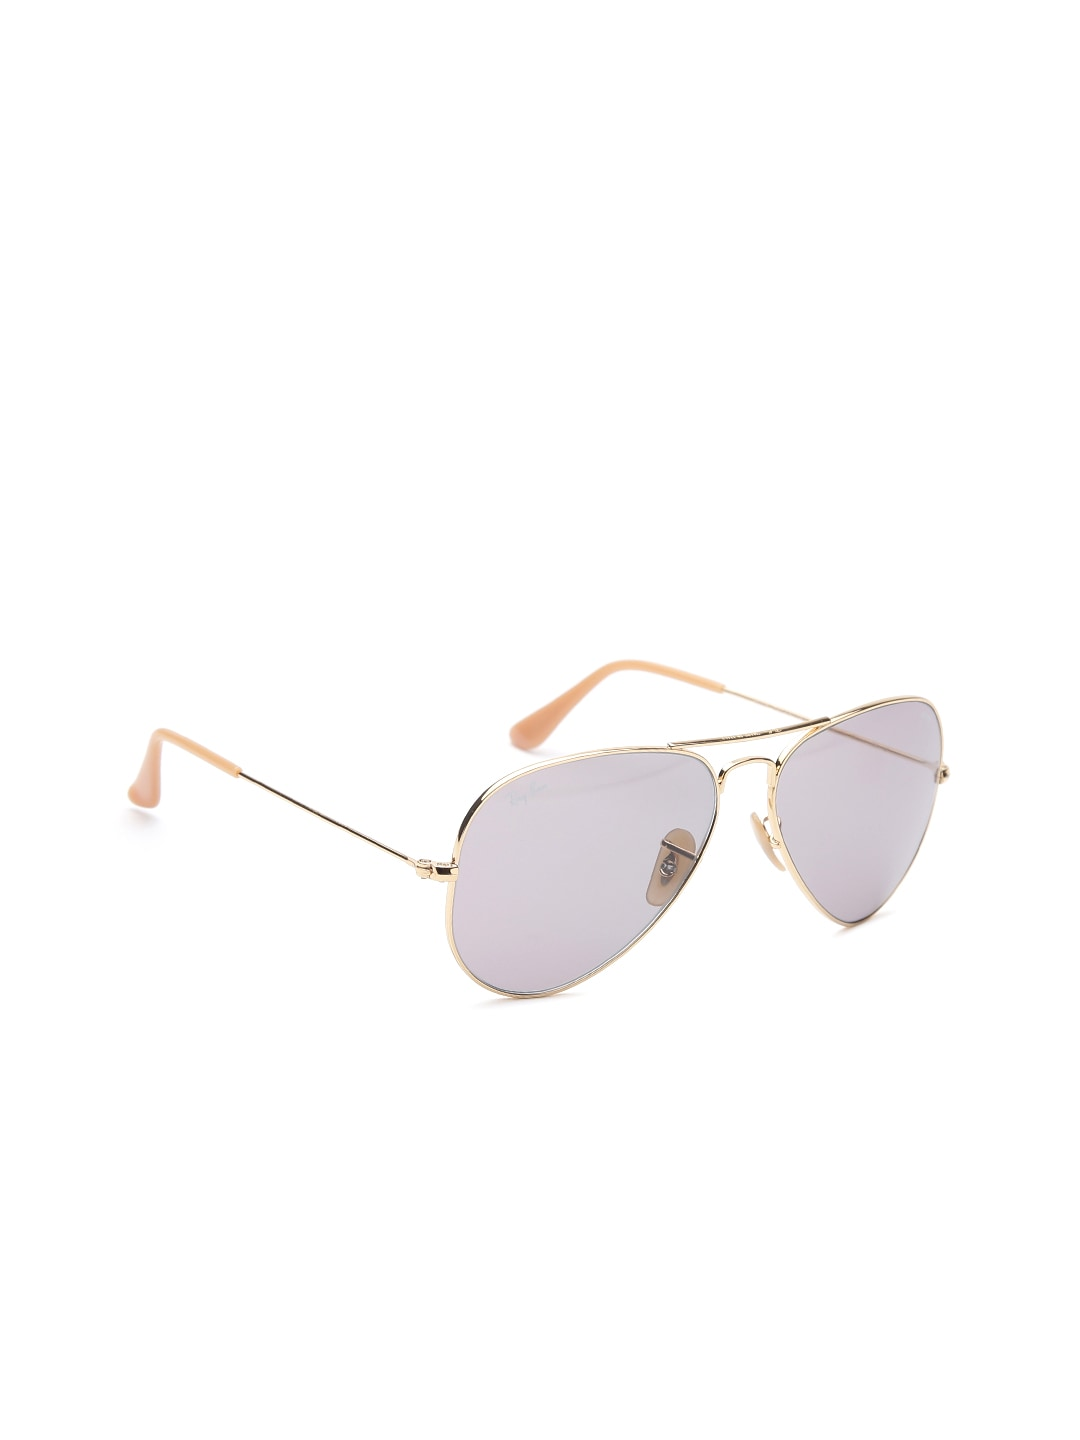 Aviator - Buy Aviator Sunglasses Online at Best Price   Myntra 2827d5b533